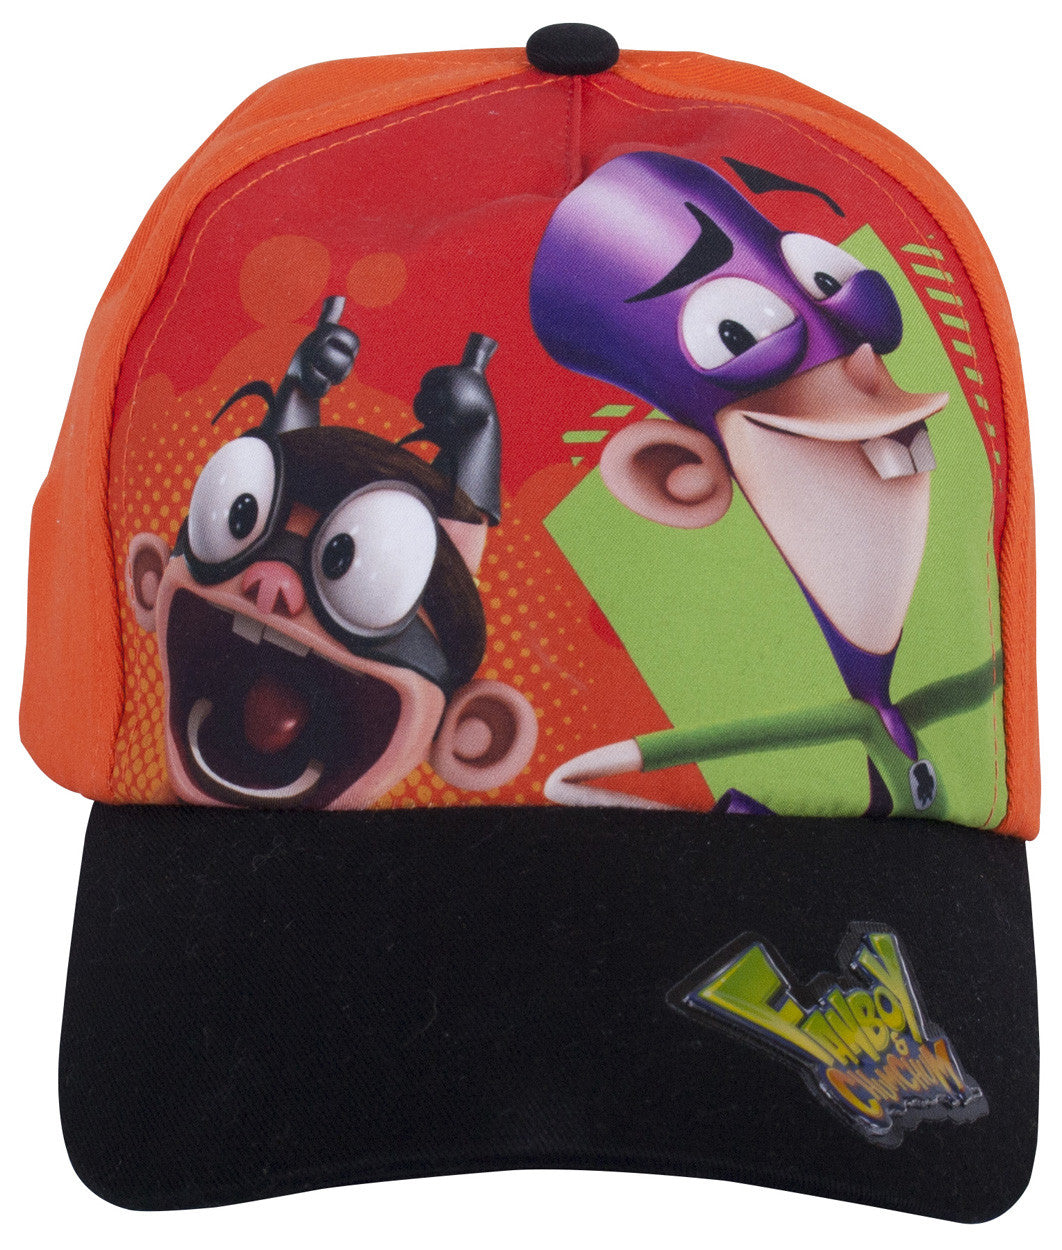 Fanboy & Chum Chum Buddies Cap - nickelodeonstore.co.uk